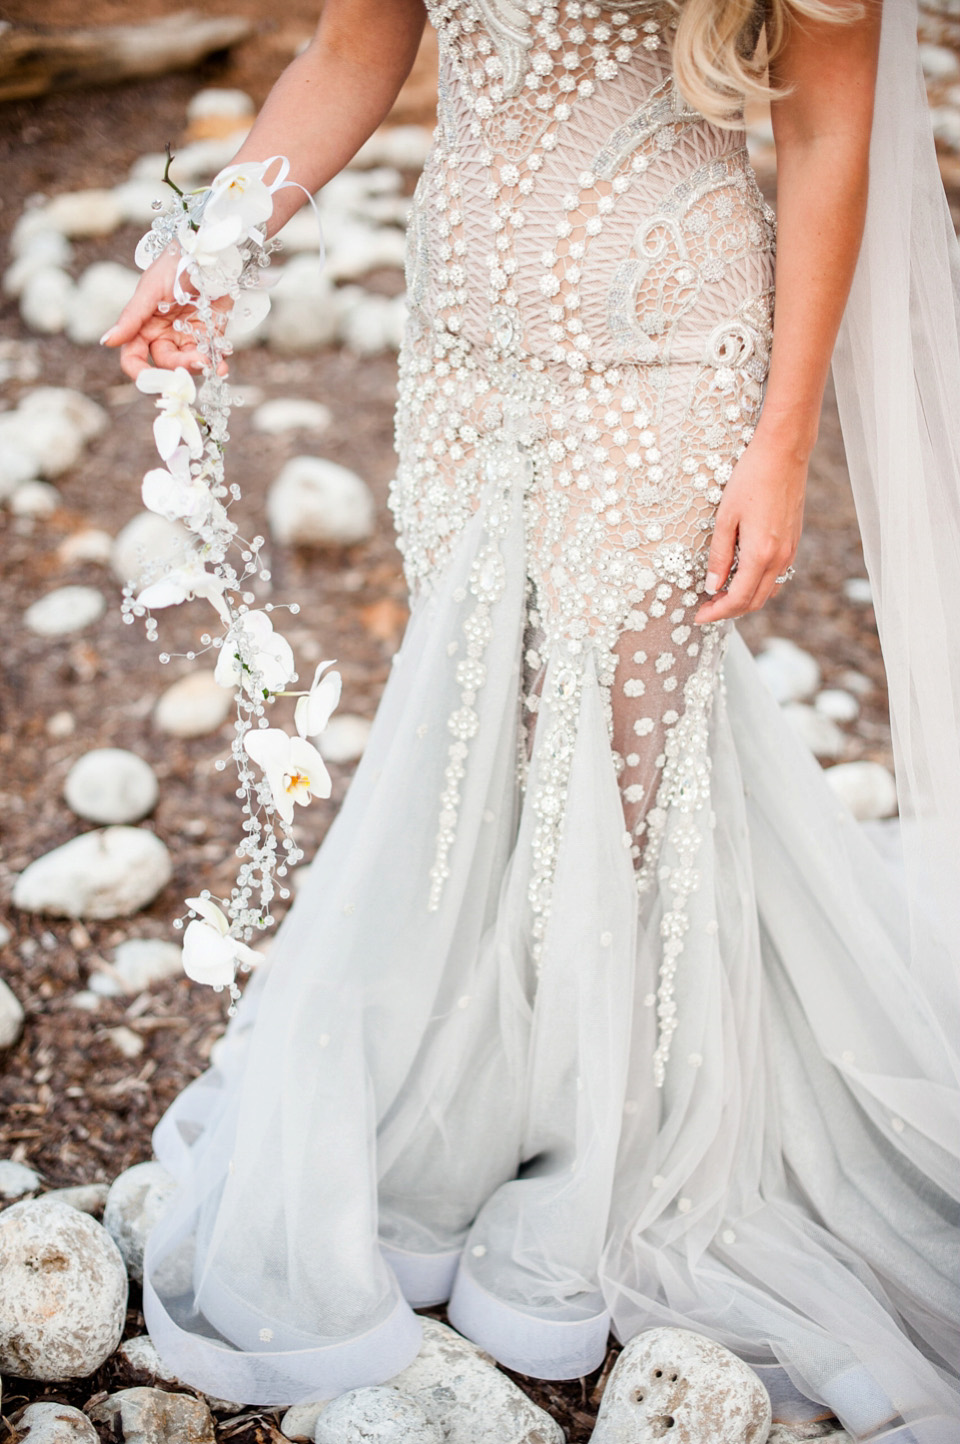 A Mermaid Inspired Wedding Dress For An Island Wedding By The Sea